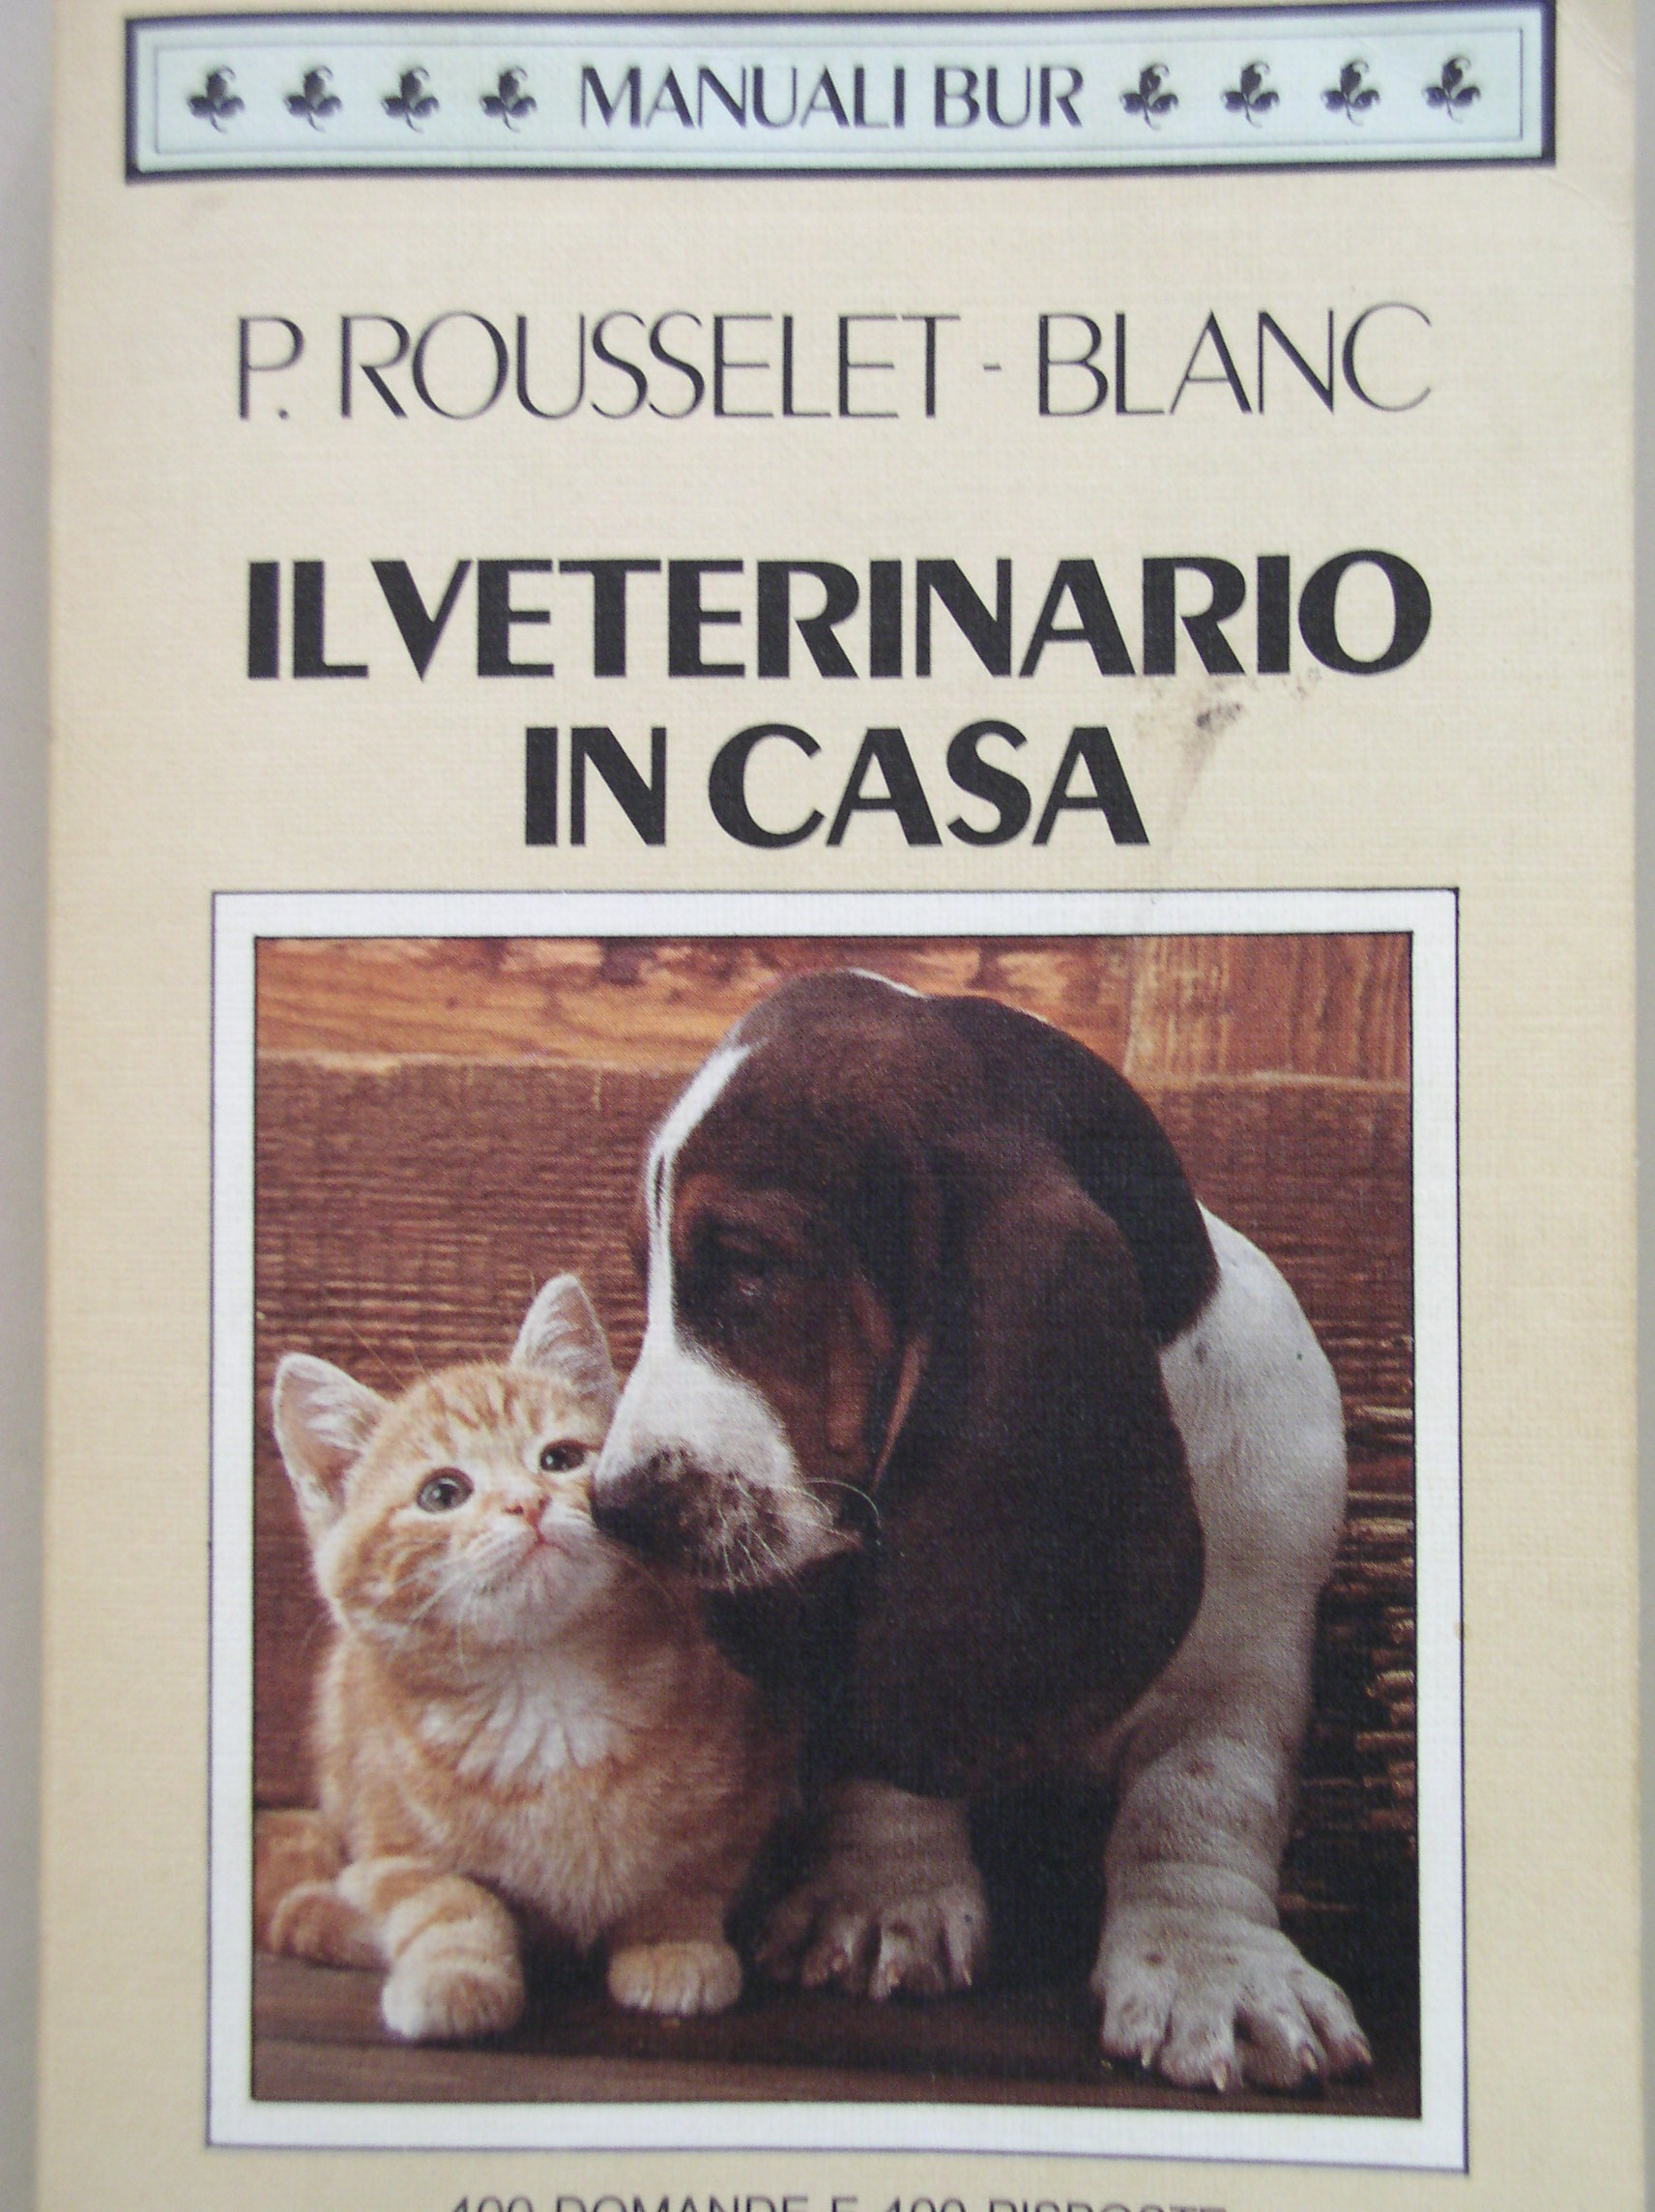 Il veterinario in casa